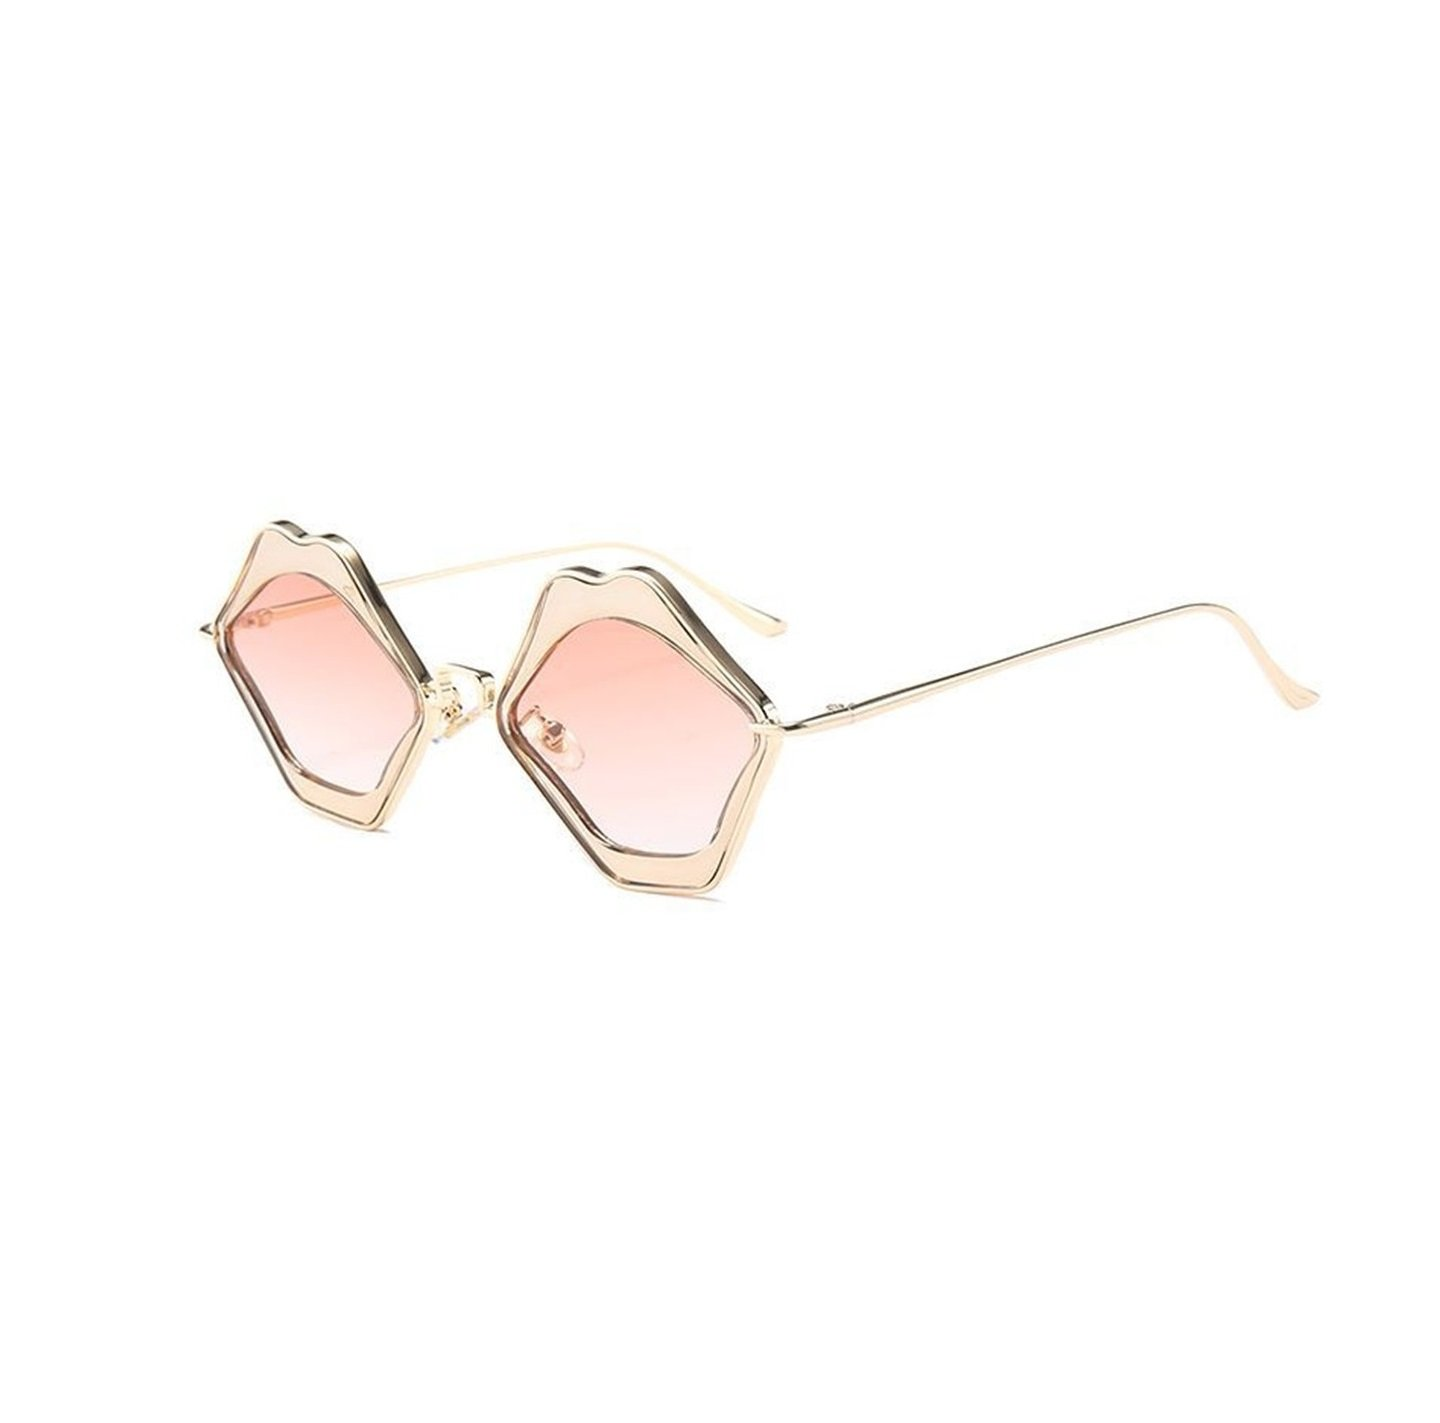 Funky Retro Pink Love Lip Shape Kiss Frame Party Shades Sunglasses For Women Or Girls